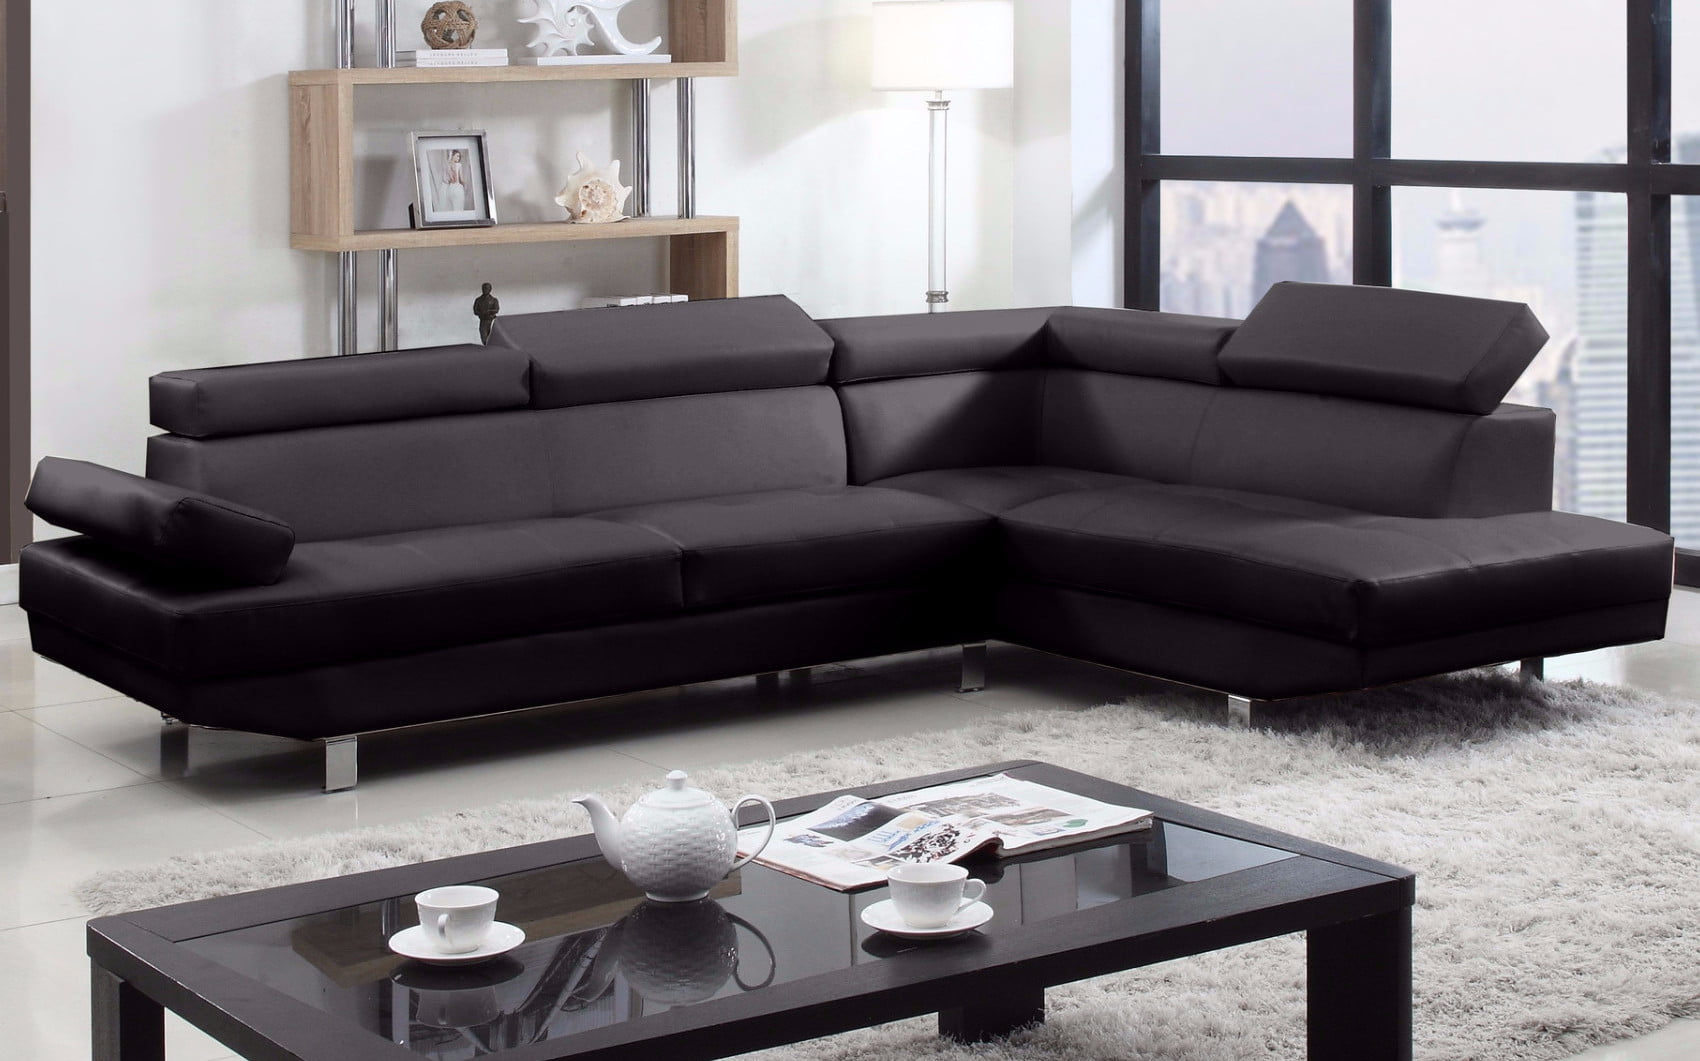 2 Piece Modern Bonded Leather Right Facing Chaise Sectional Sofa - Walmart.com : modern sofa with chaise - Sectionals, Sofas & Couches